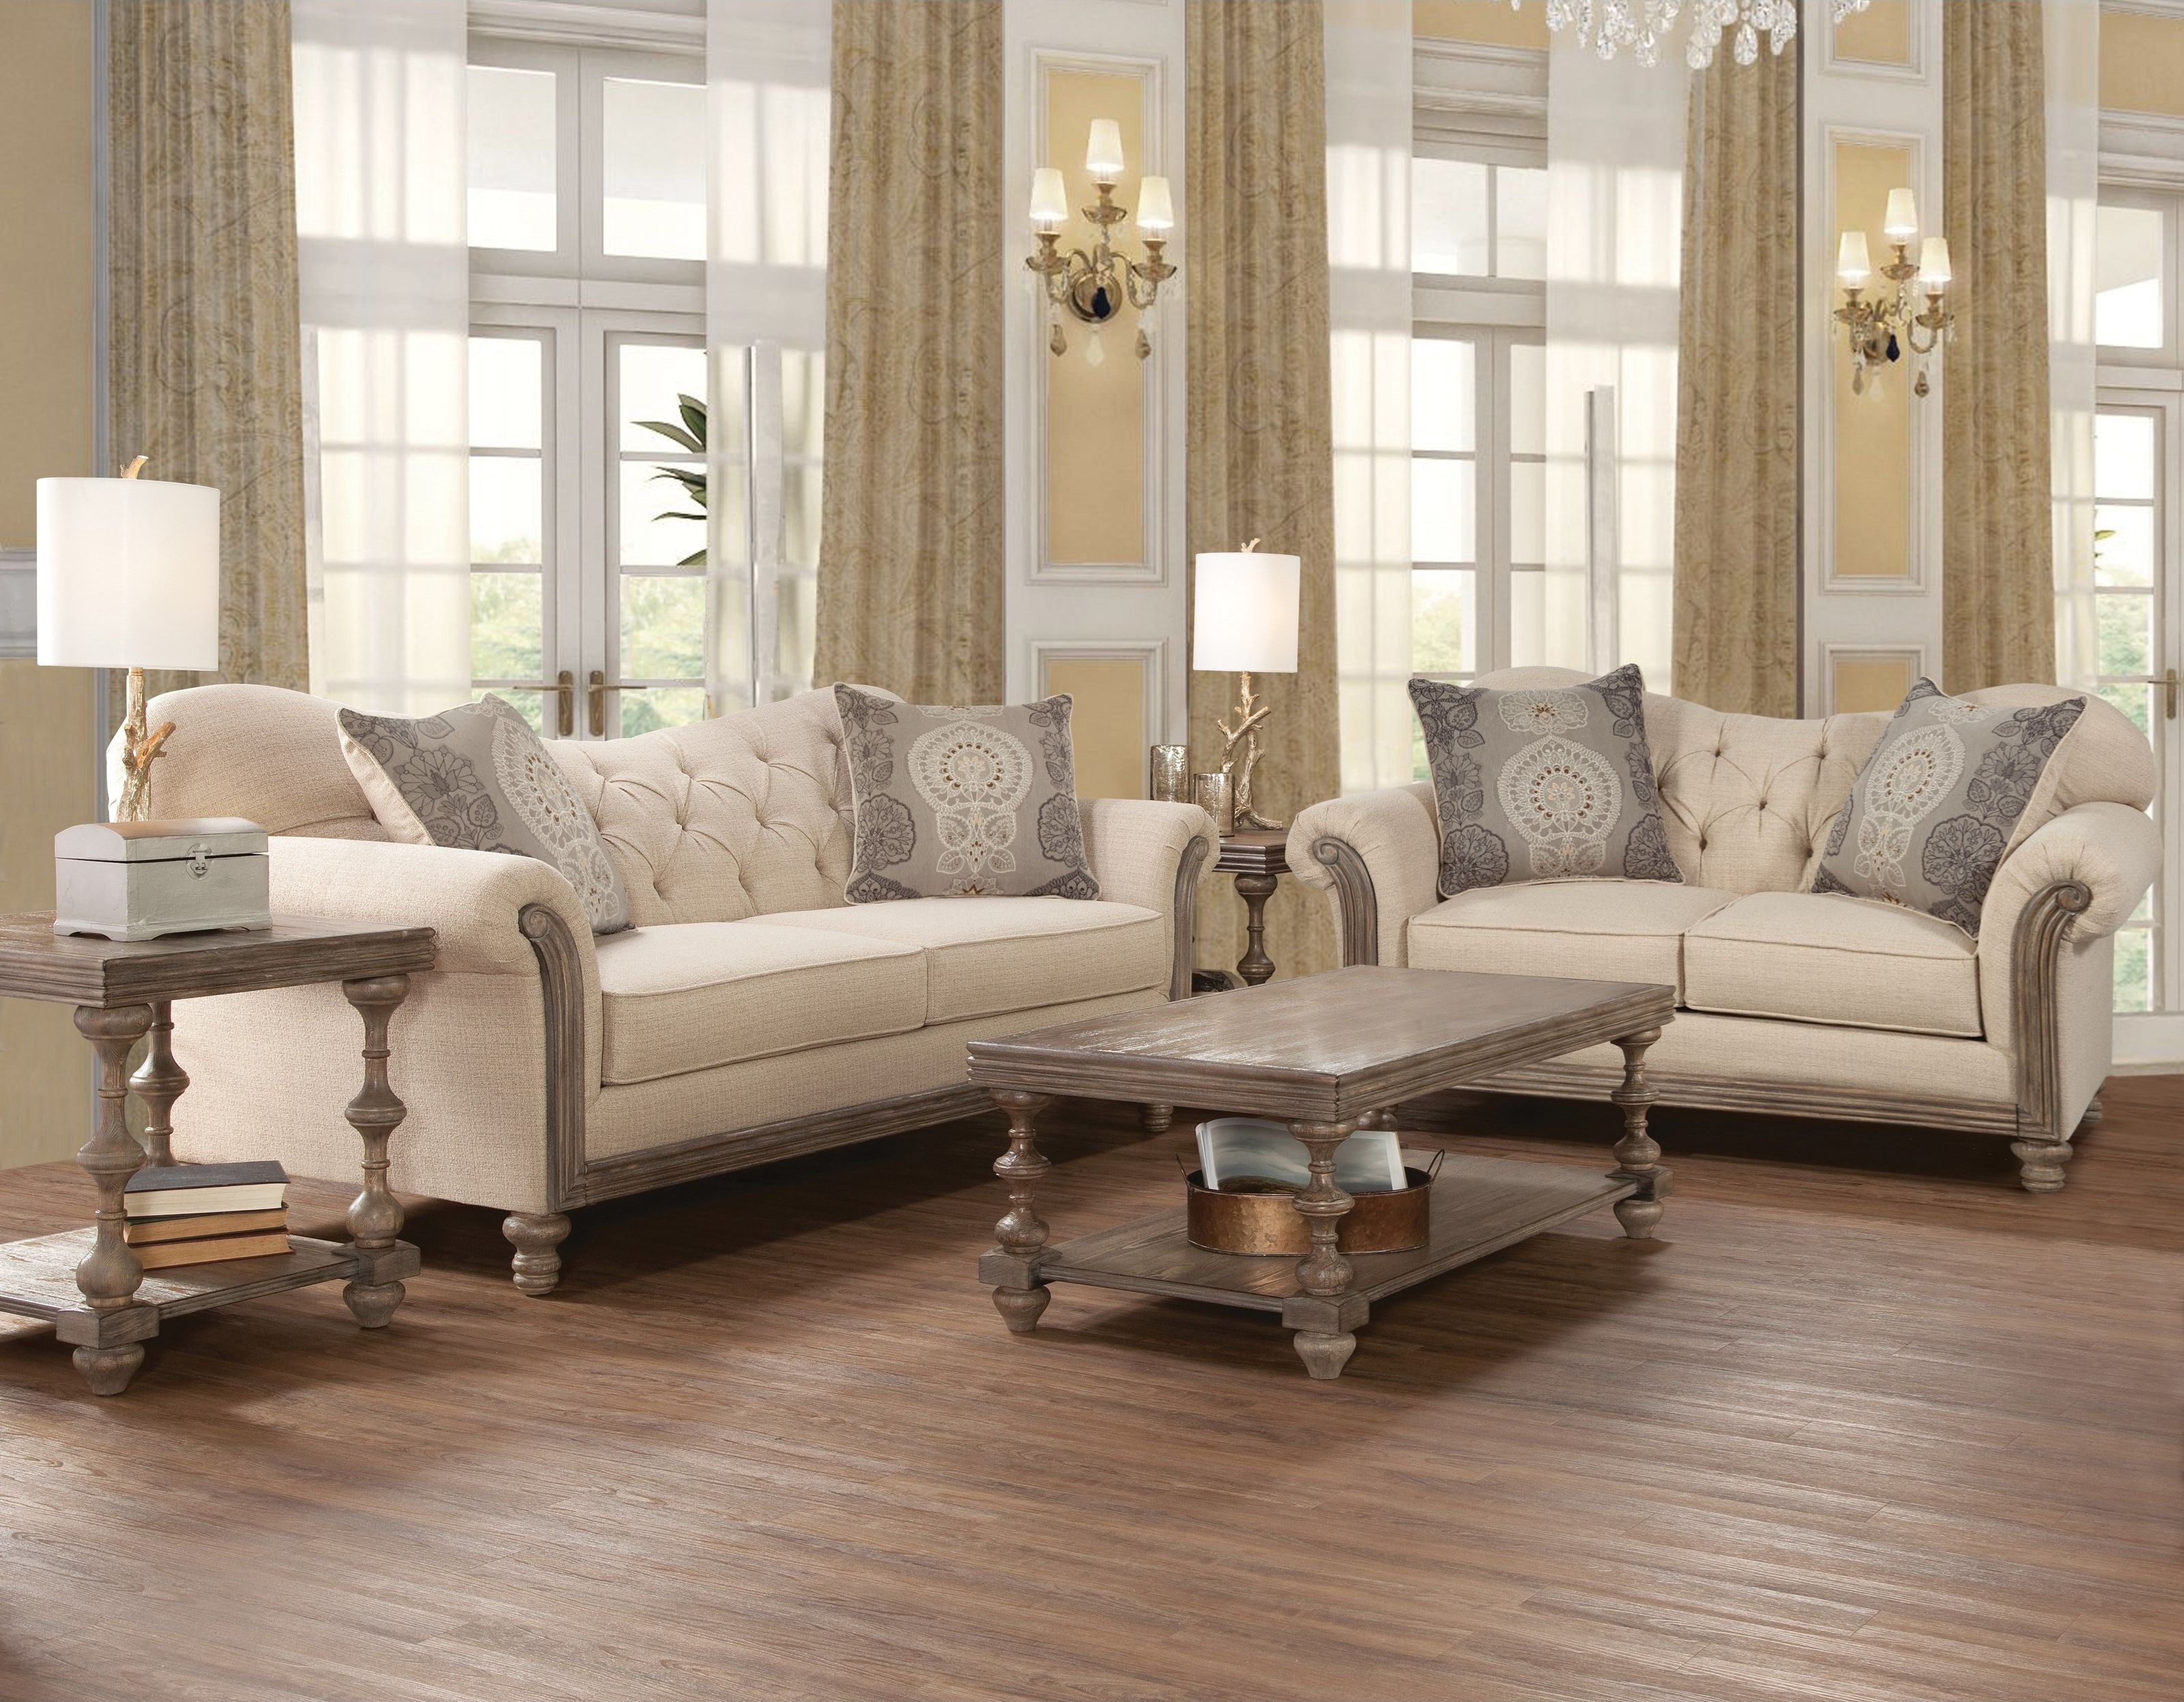 New Siam Sofa And Love Seat In Parchment With Baroque Fog Toss